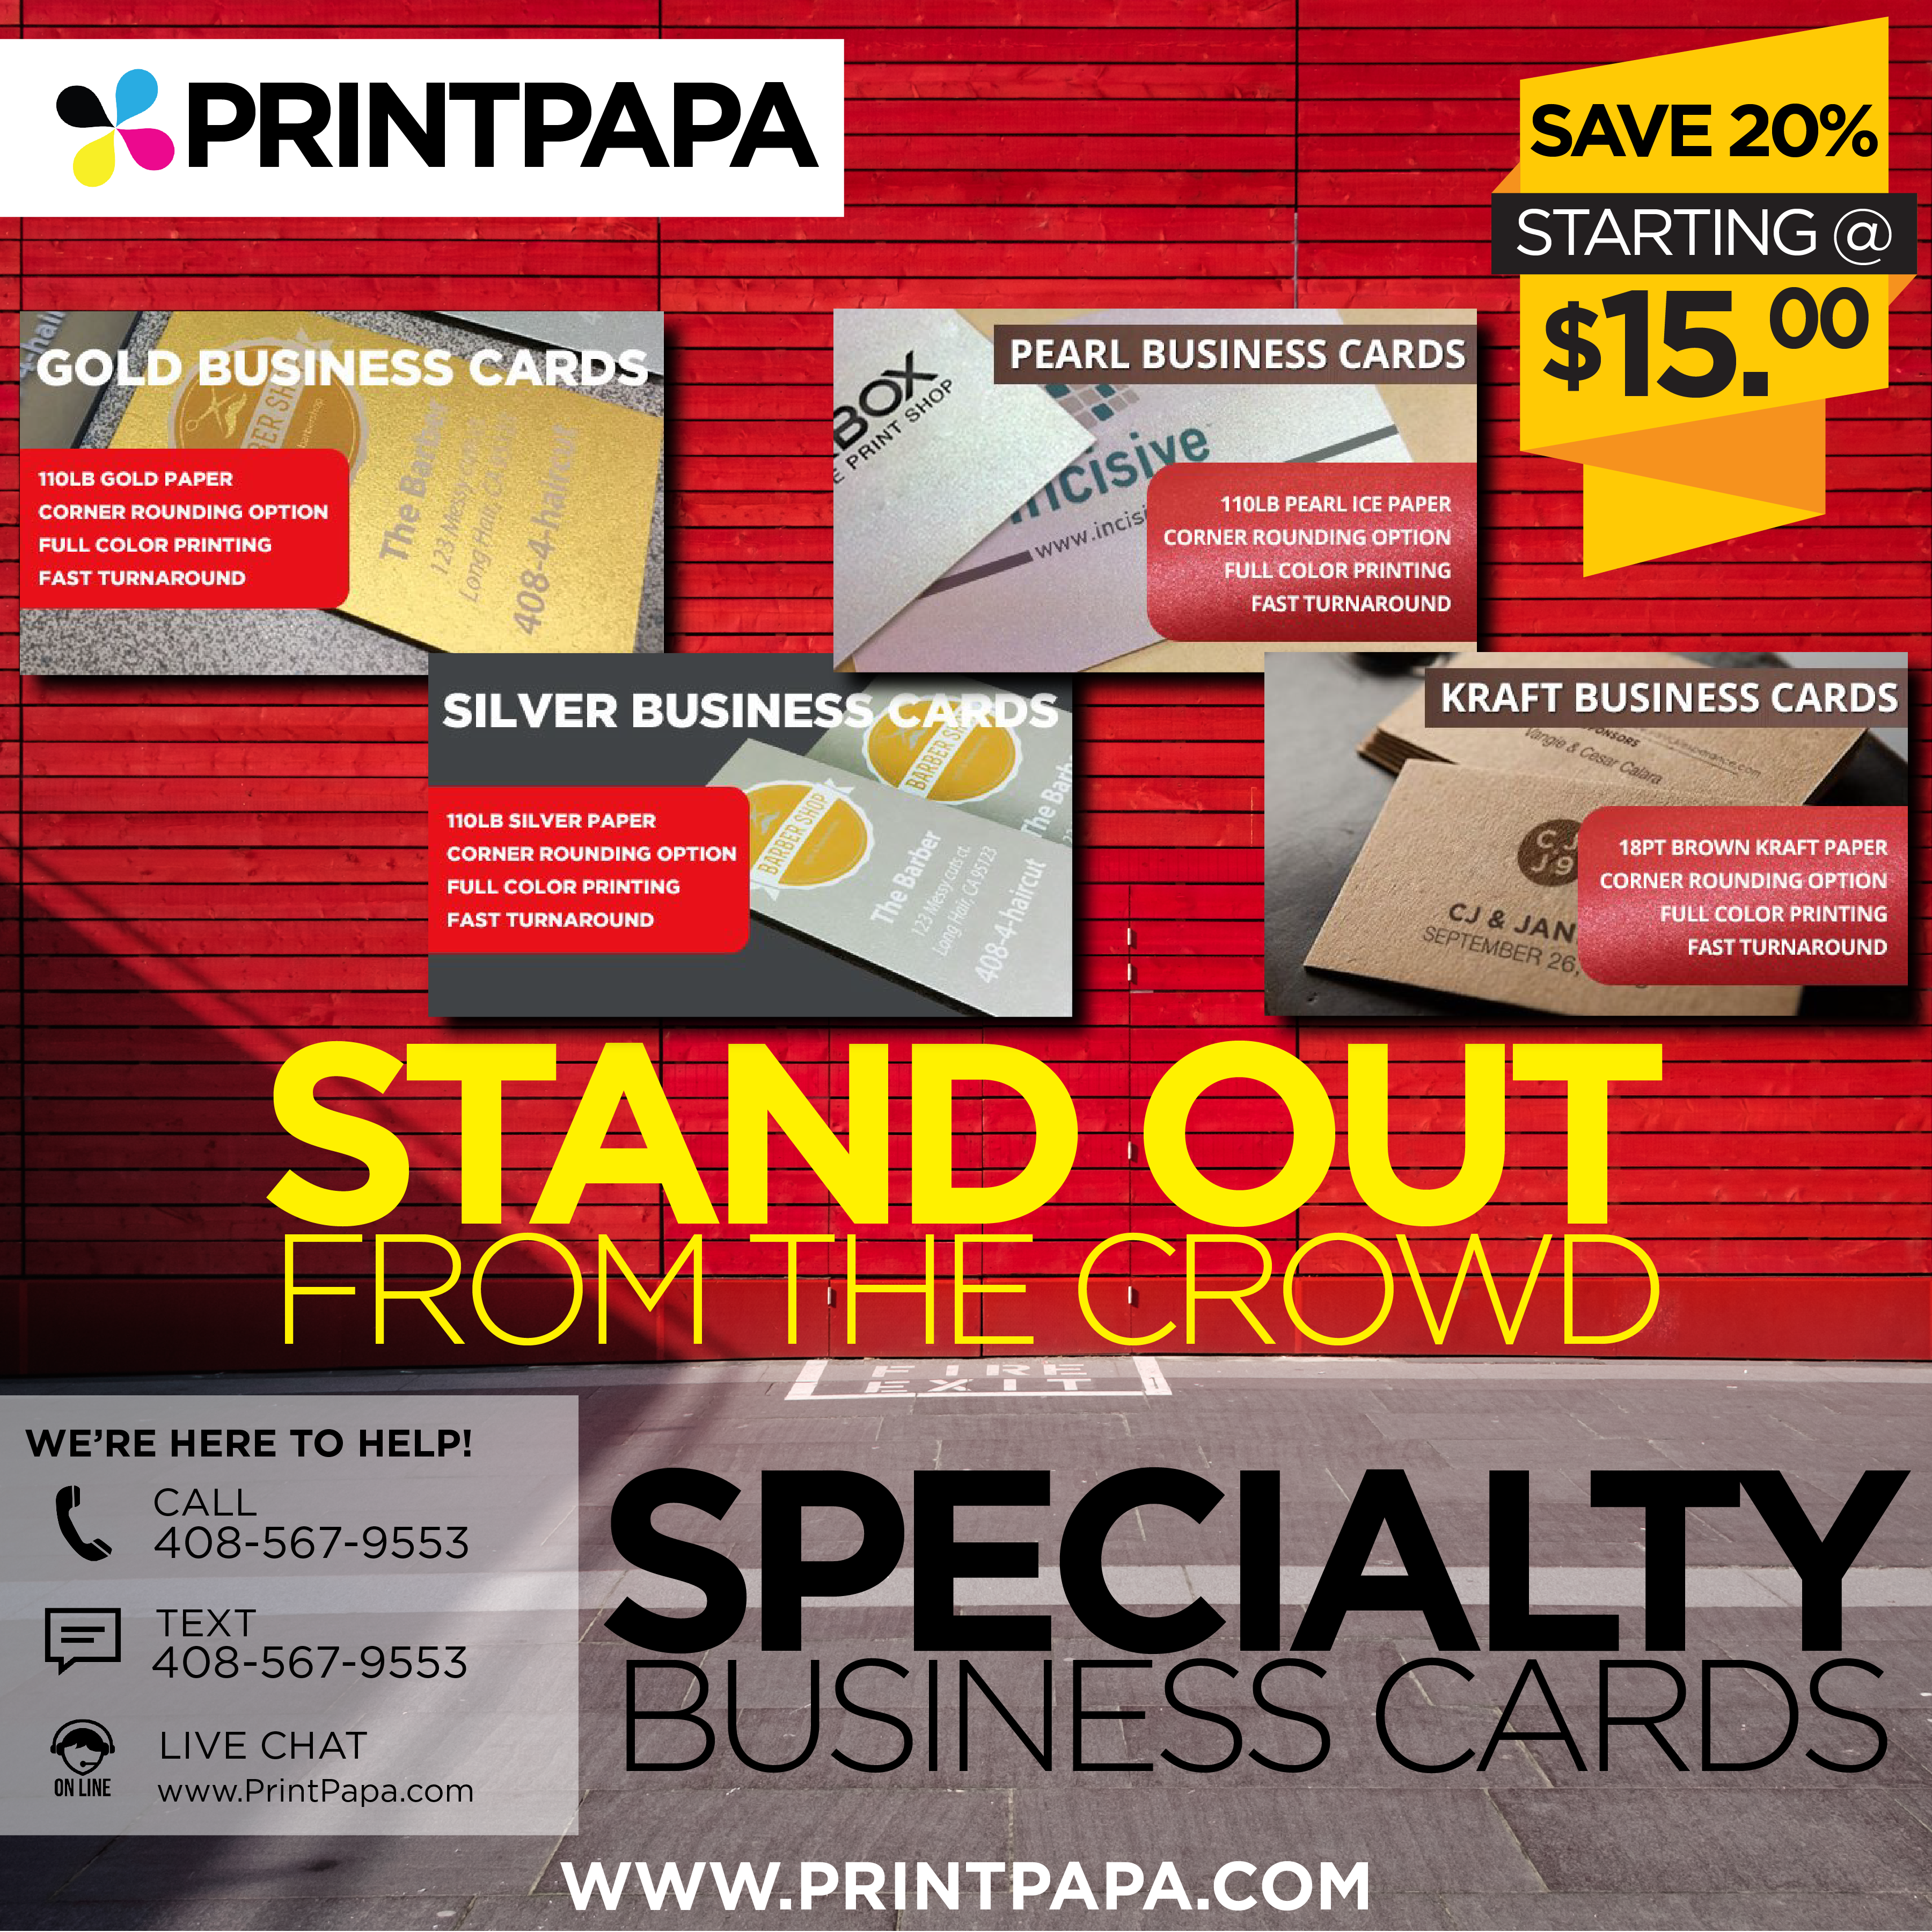 Stand out from the crowd get your business cards printed on shiny get your business cards printed on shiny gold silver or pearl metallic paper or get a naturalrustic feel with our kraft stock colourmoves